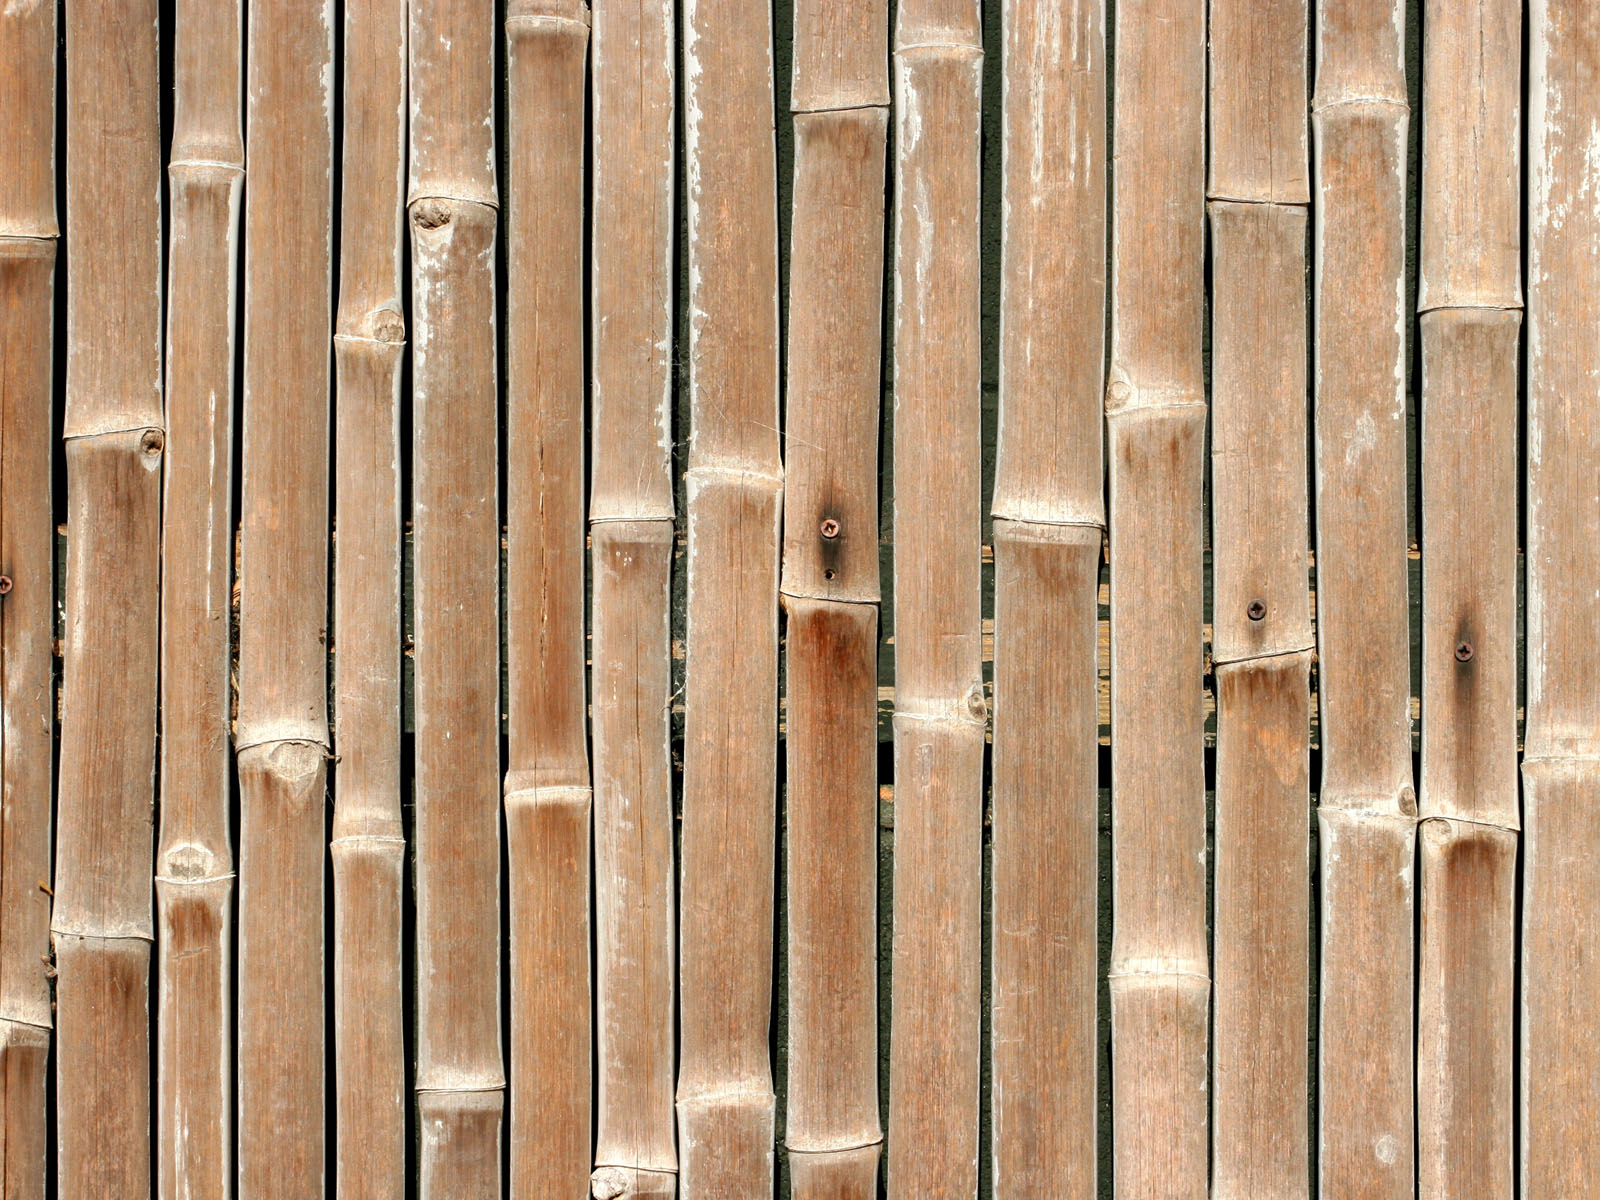 Wallpapers bamboo wall wallpapers for Wallpapering a wall